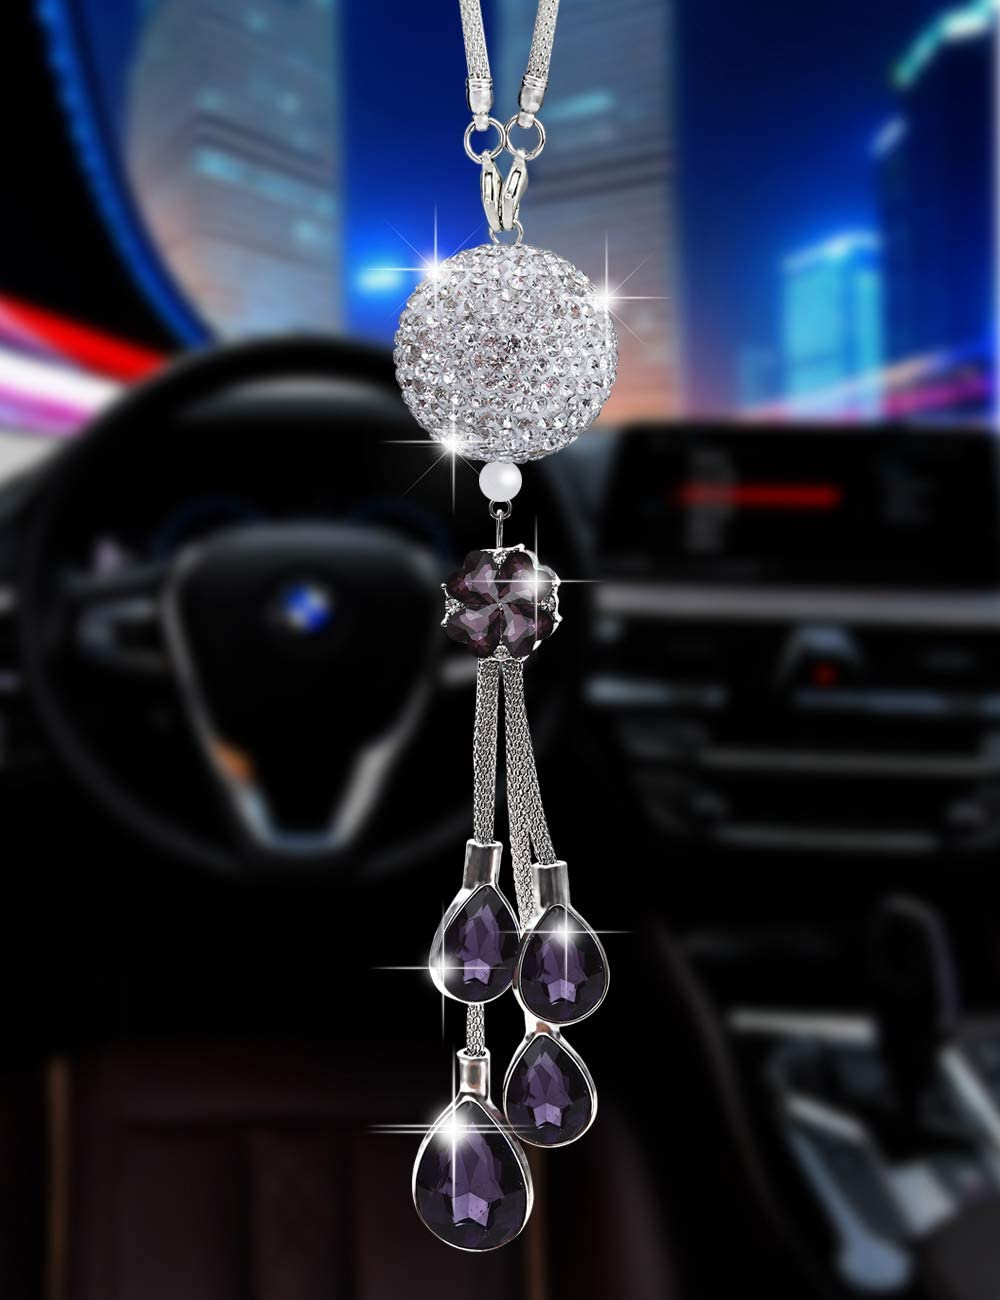 Bling Car Accessories for Women and Man,Cute Car Decor for Women ,Lucky Crystal Sun Catcher Ornament,Rear View Mirror Crystal Ball Charm Decor (30 mm Clear)(Purple)